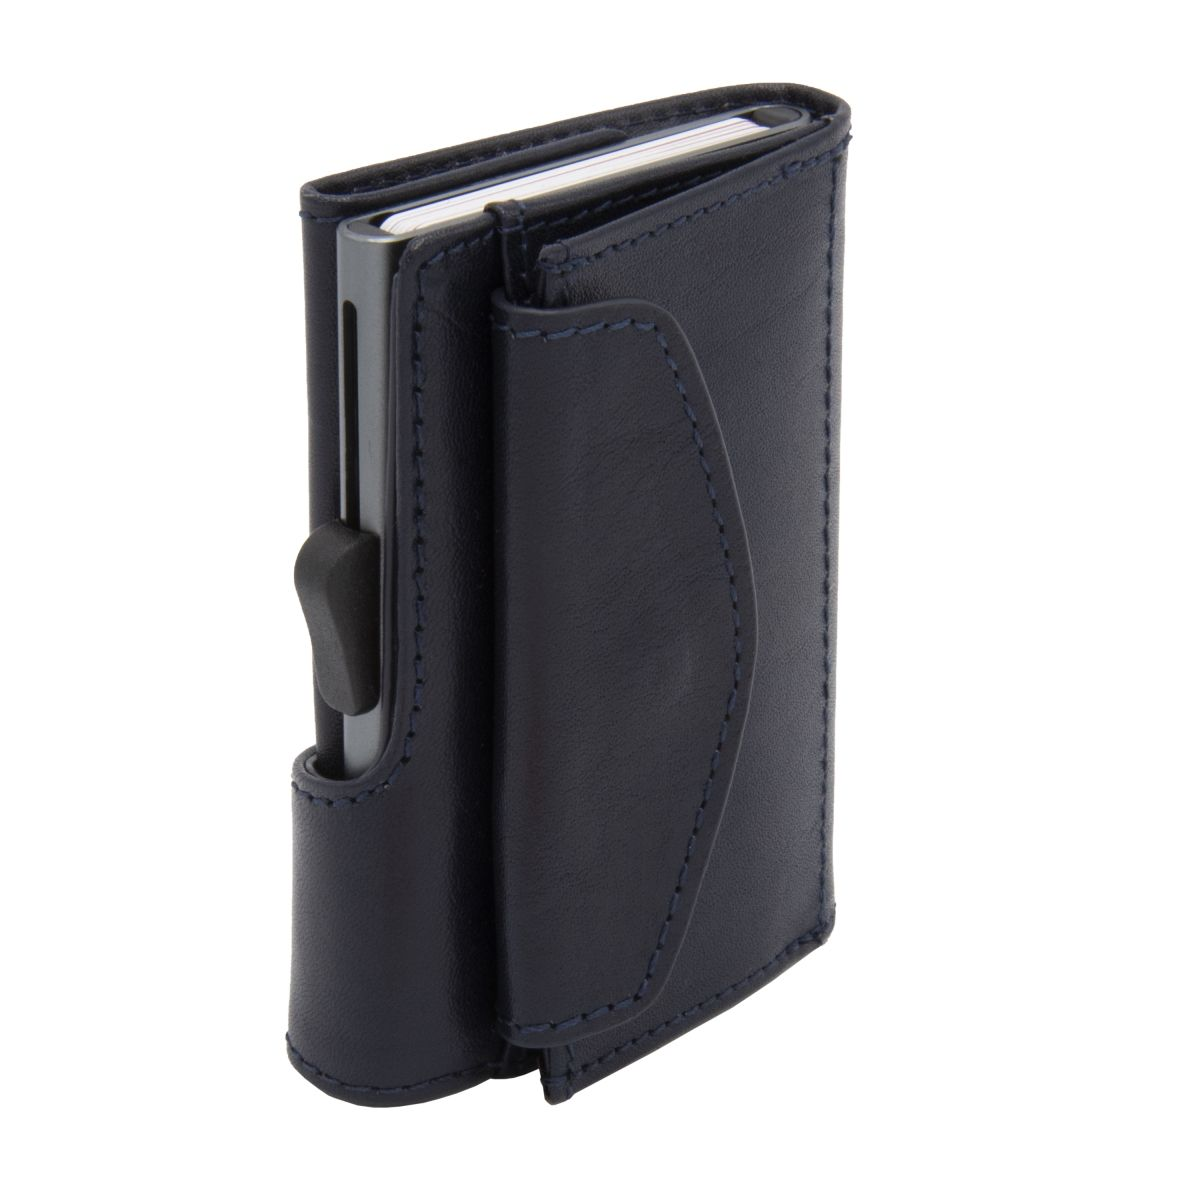 Aluminum Card Holder with Genuine Leather and Coin Pouch - Blue Montana